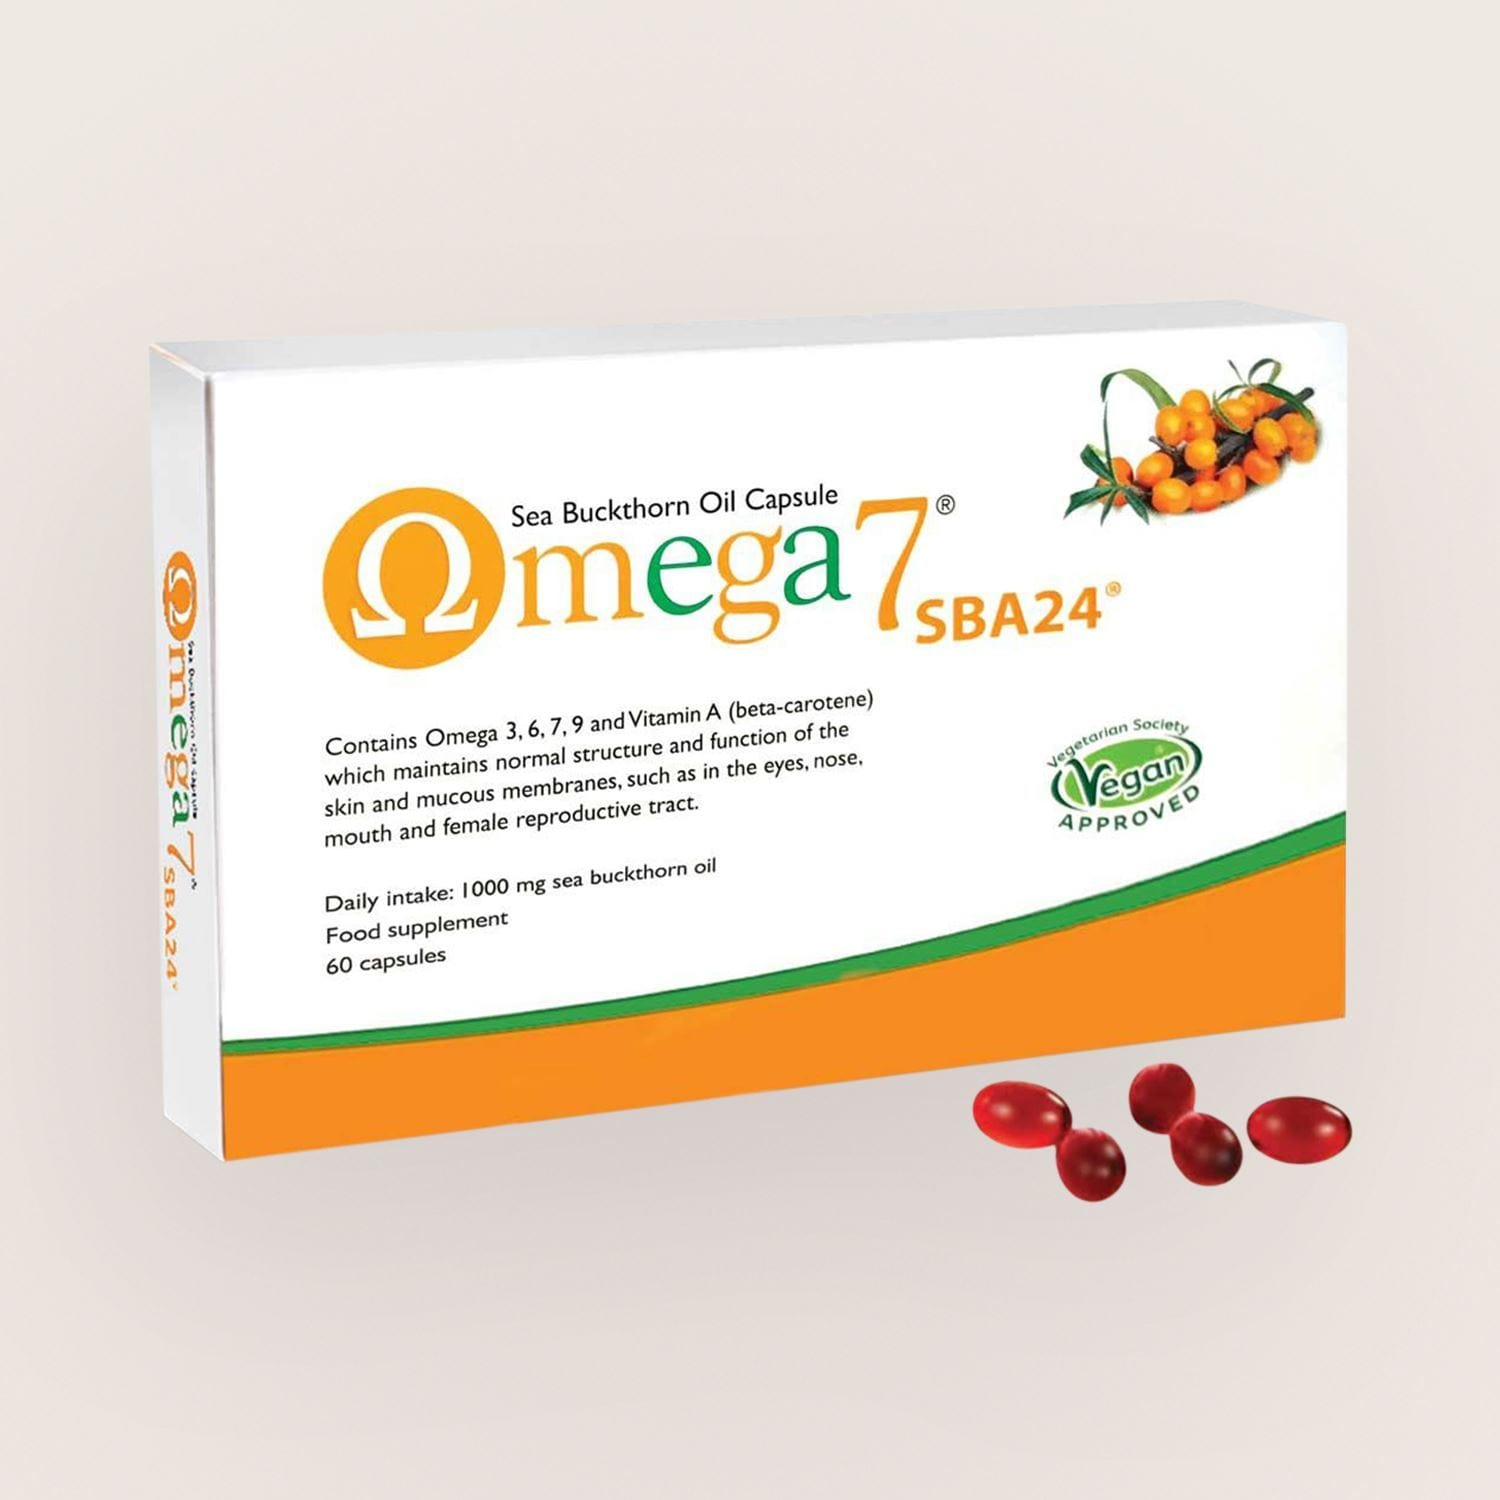 Omega 7 Live Better With Menopause